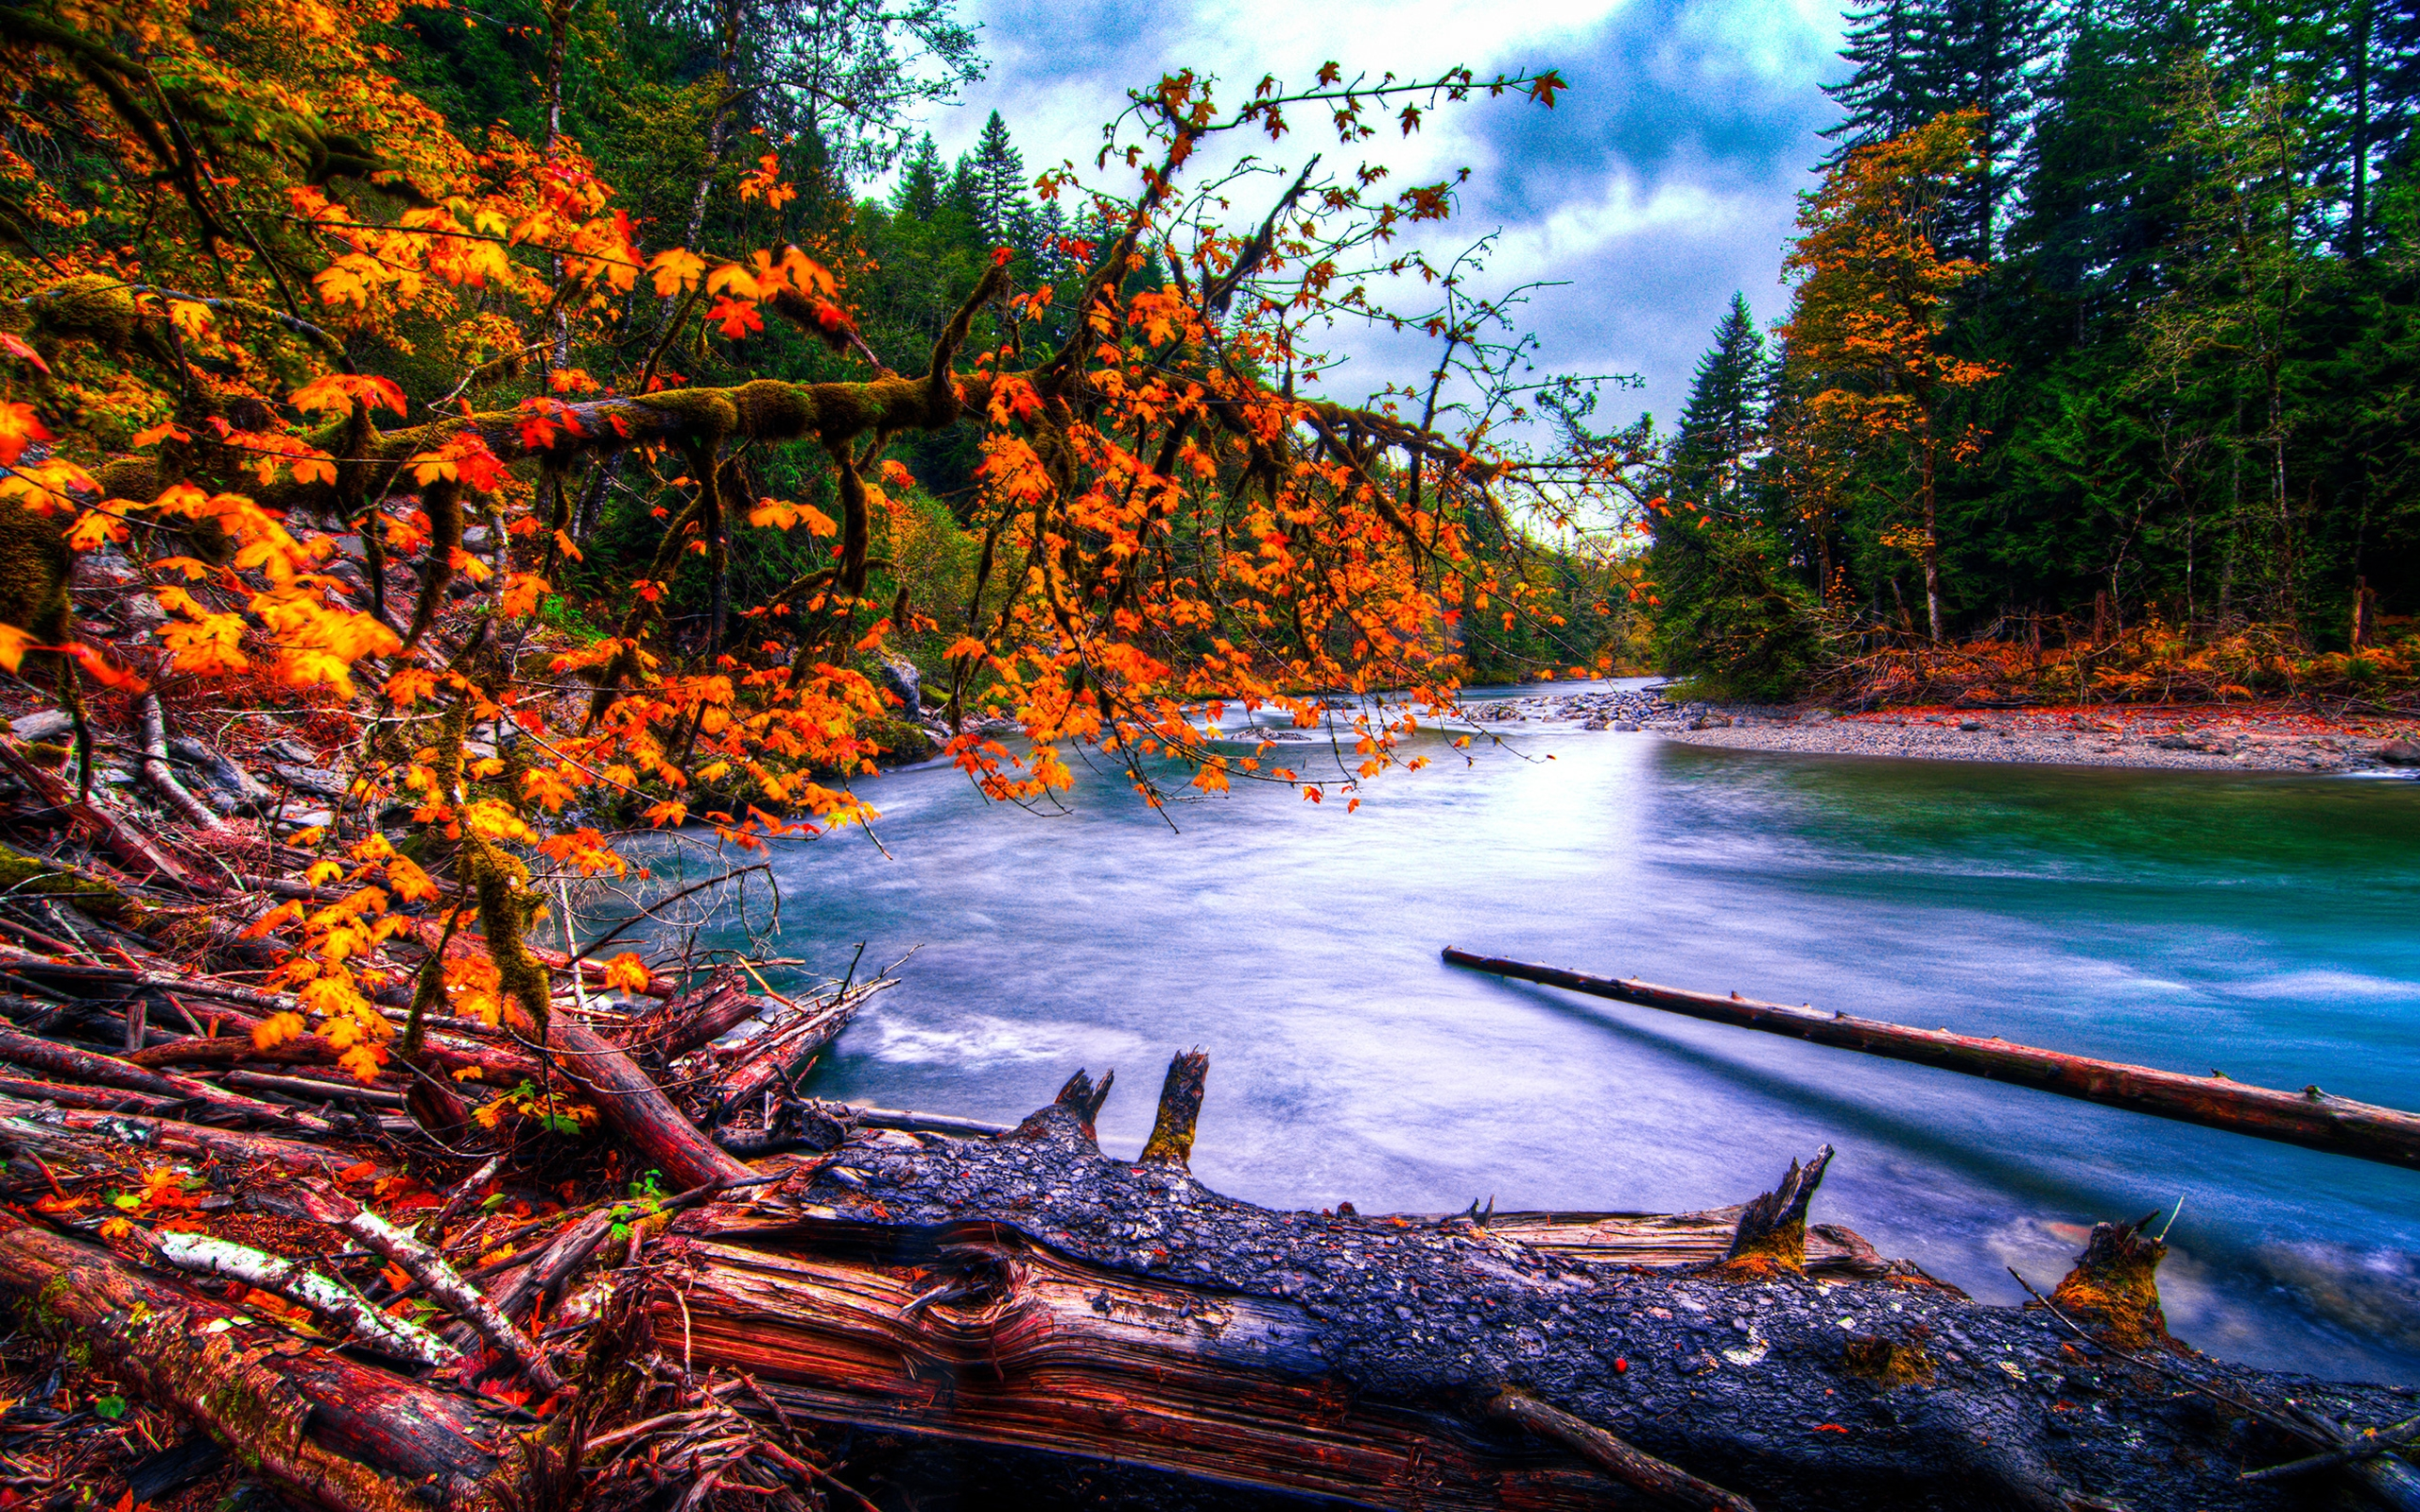 Fall Wallpaper For Desktop Background Snoqualmie River In Washington At Autumn Hdr Hd Desktop